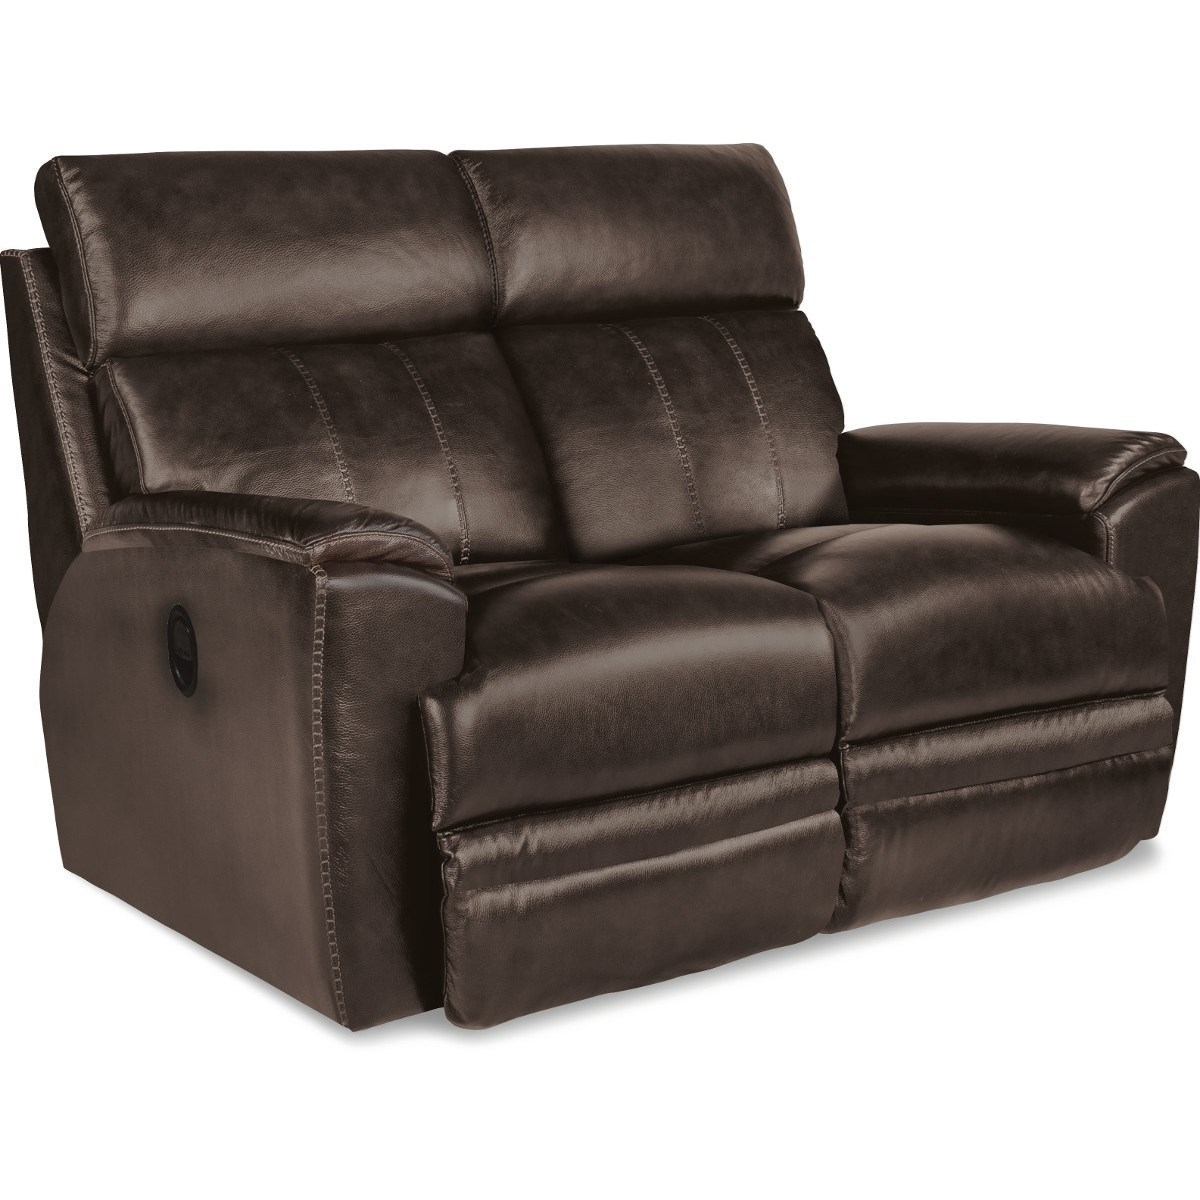 Talladega Power Reclining Lovesseat by La-Z-Boy at Bennett's Furniture and Mattresses